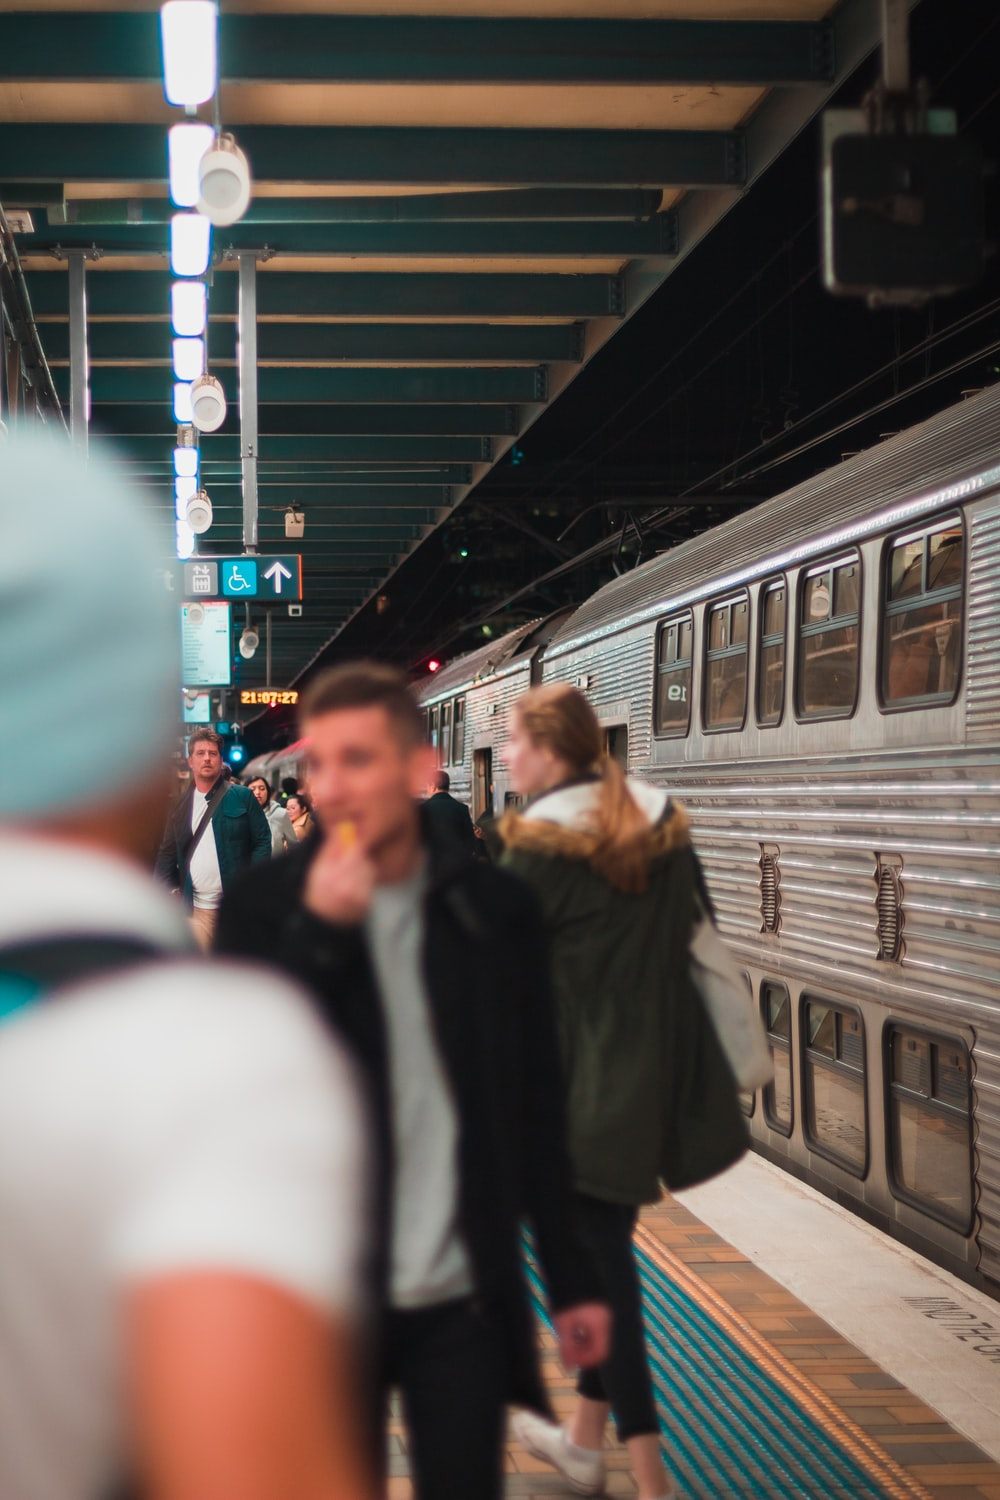 people standing on train station near train during nighttime